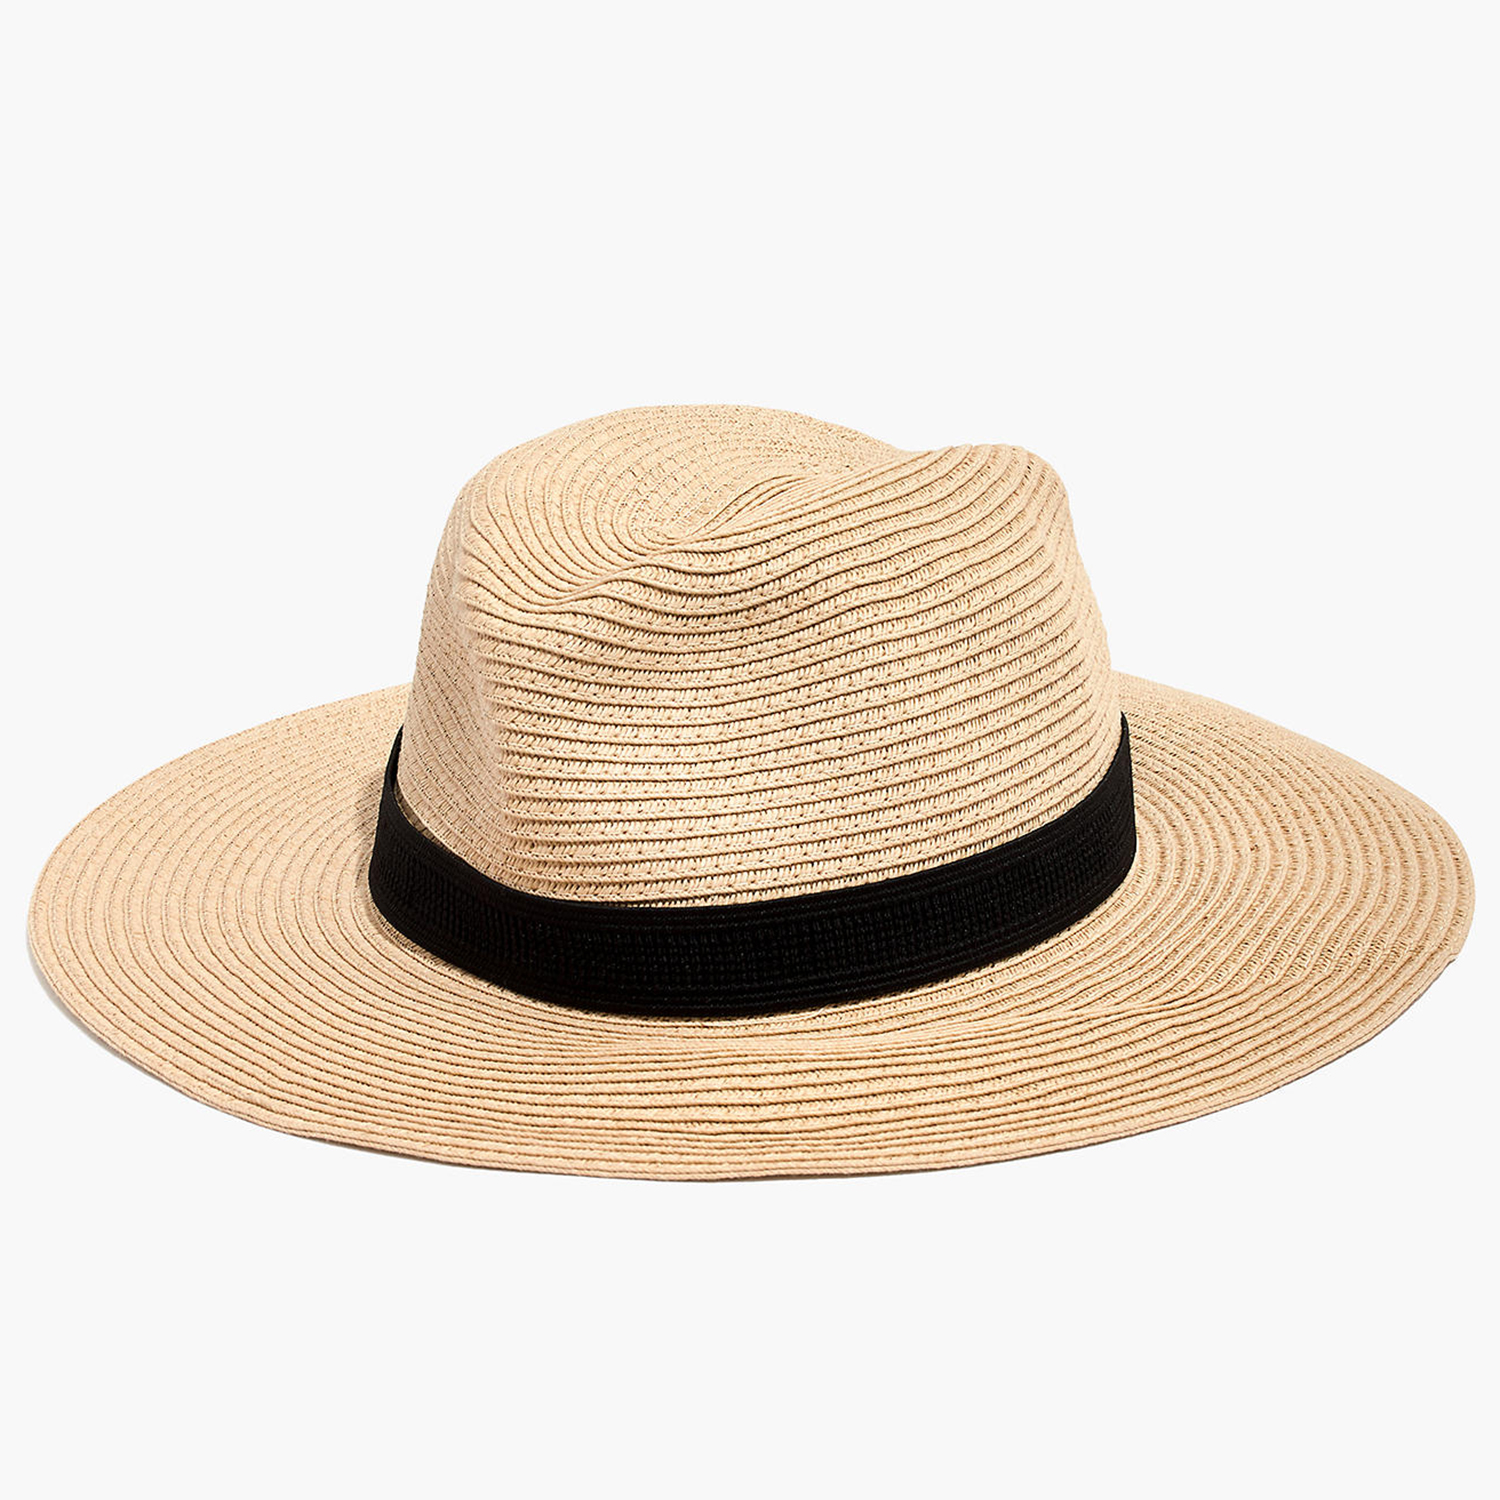 Women's Packable Mesa Straw Hat